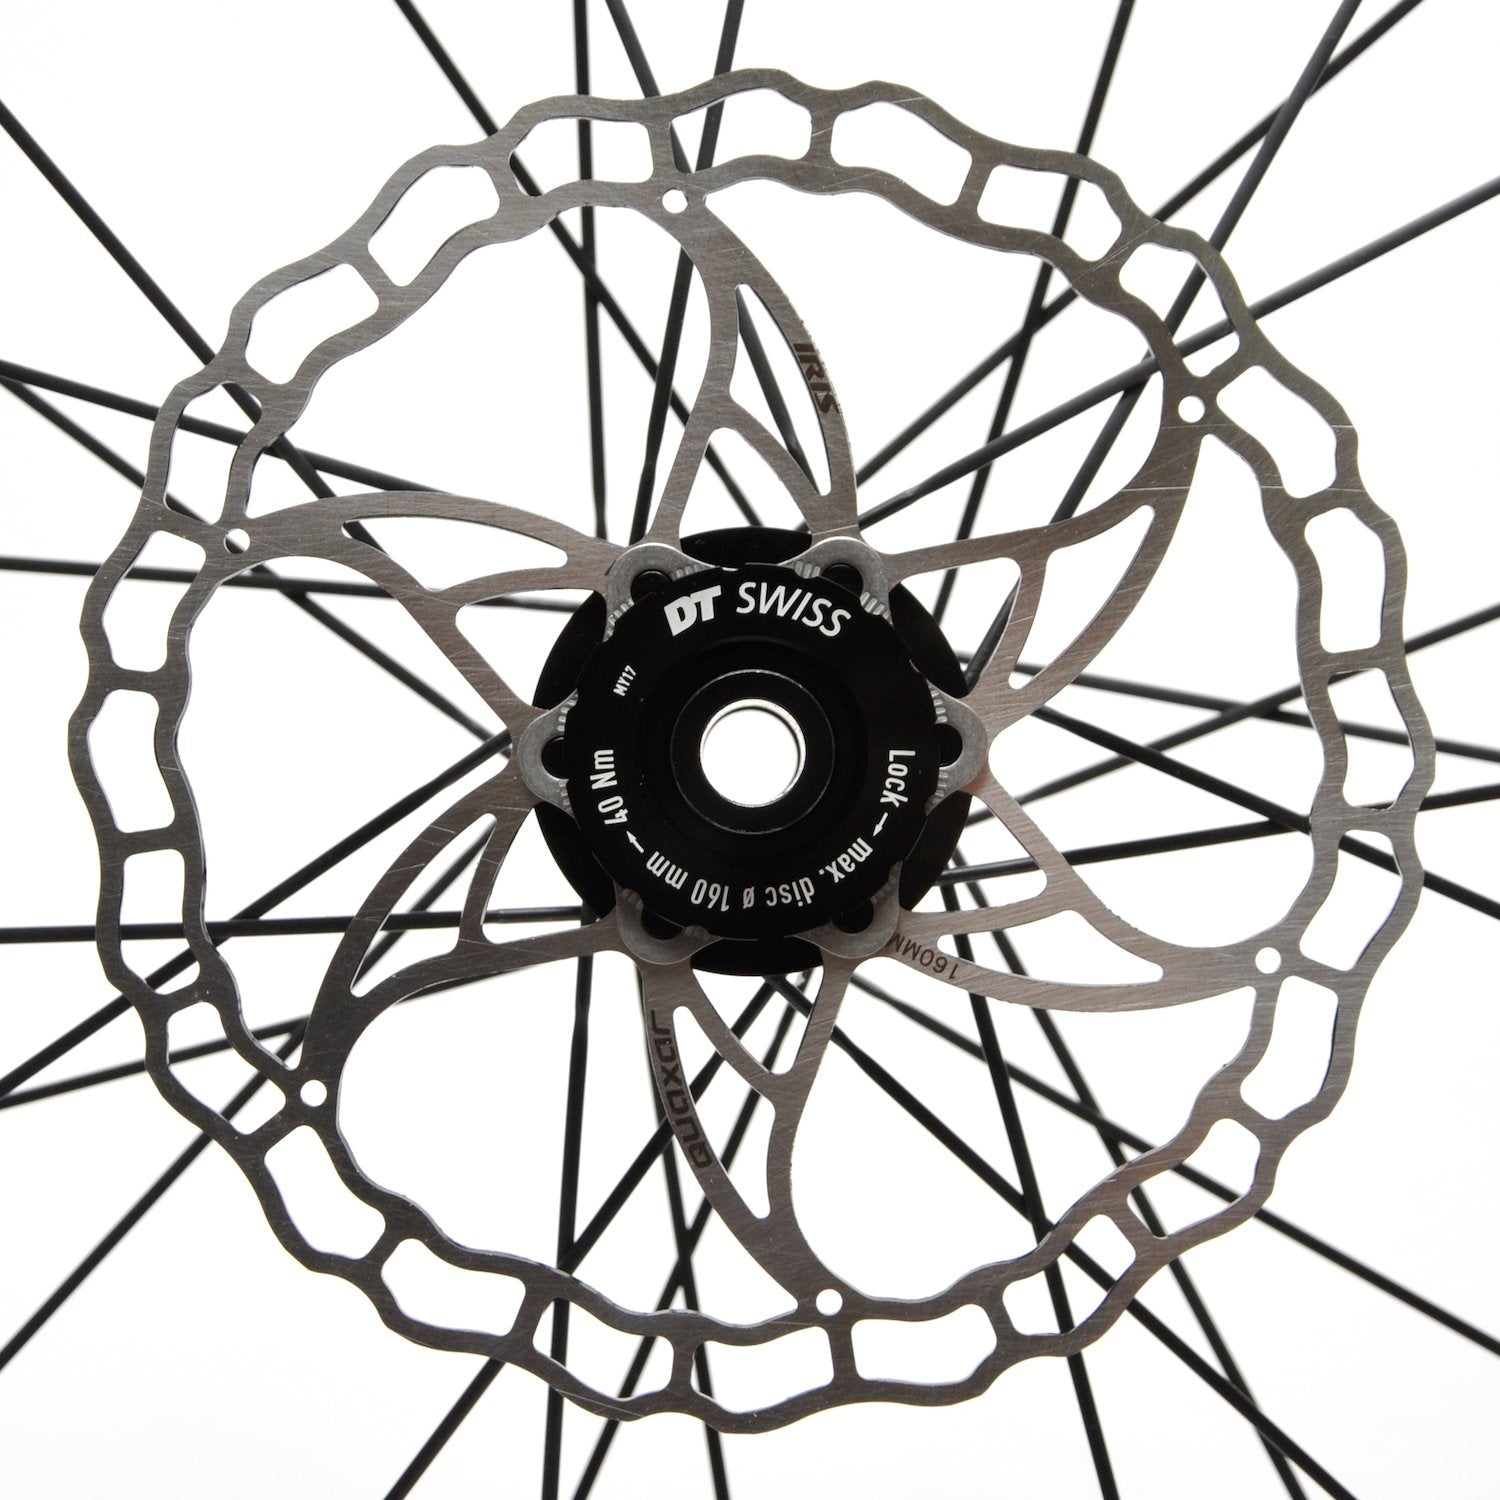 QUAXAR IRIS 160MM LIGHTWEIGHT DISC ROTOR